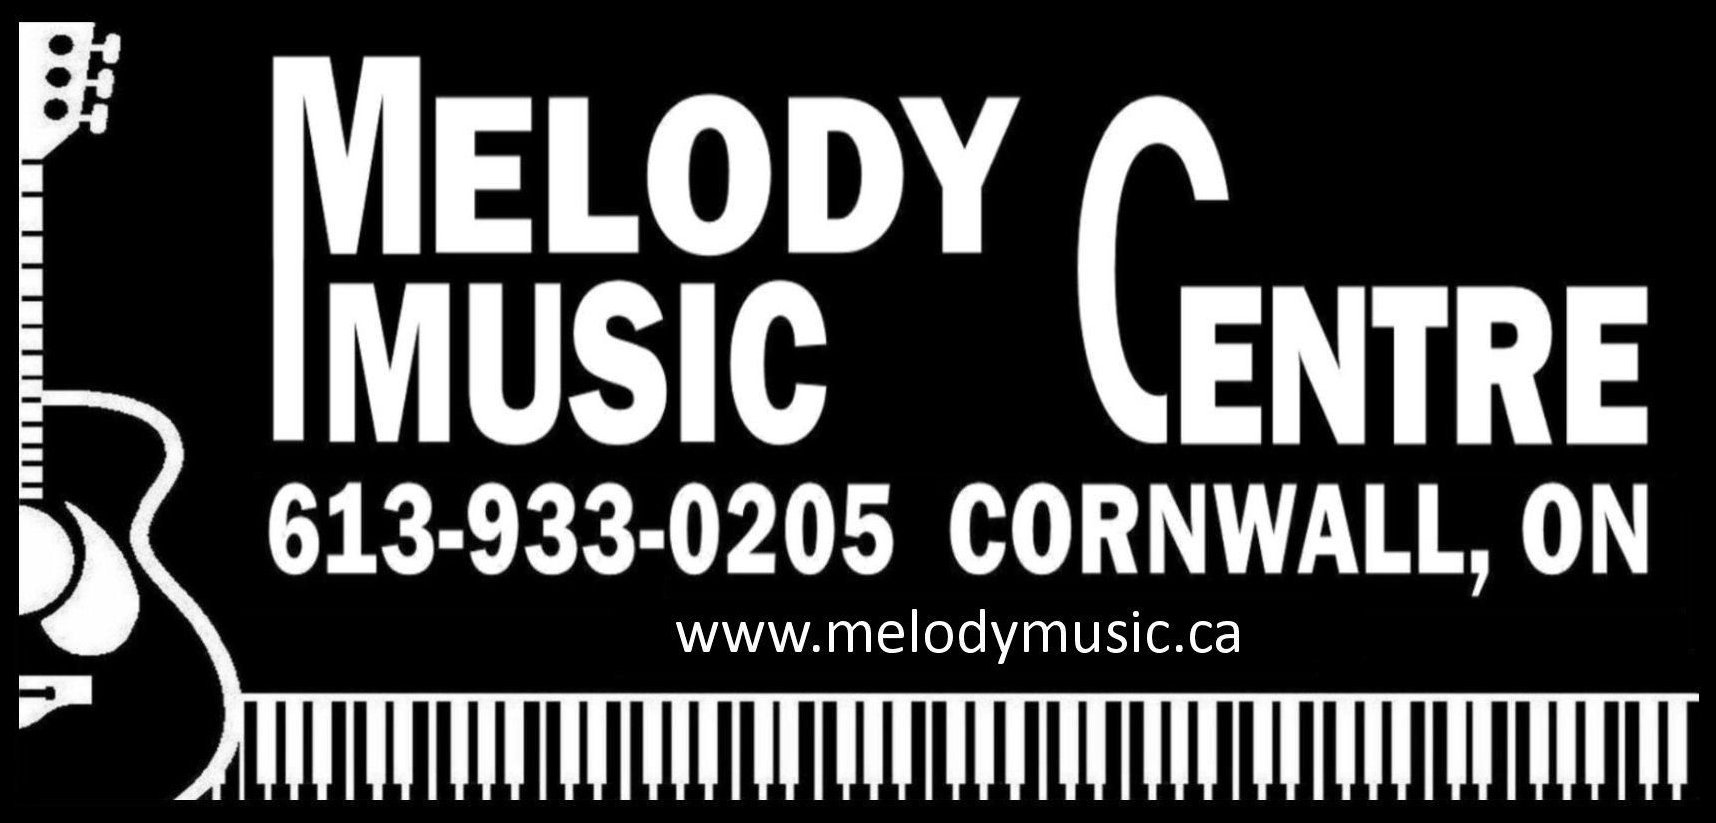 Melody Music Centre